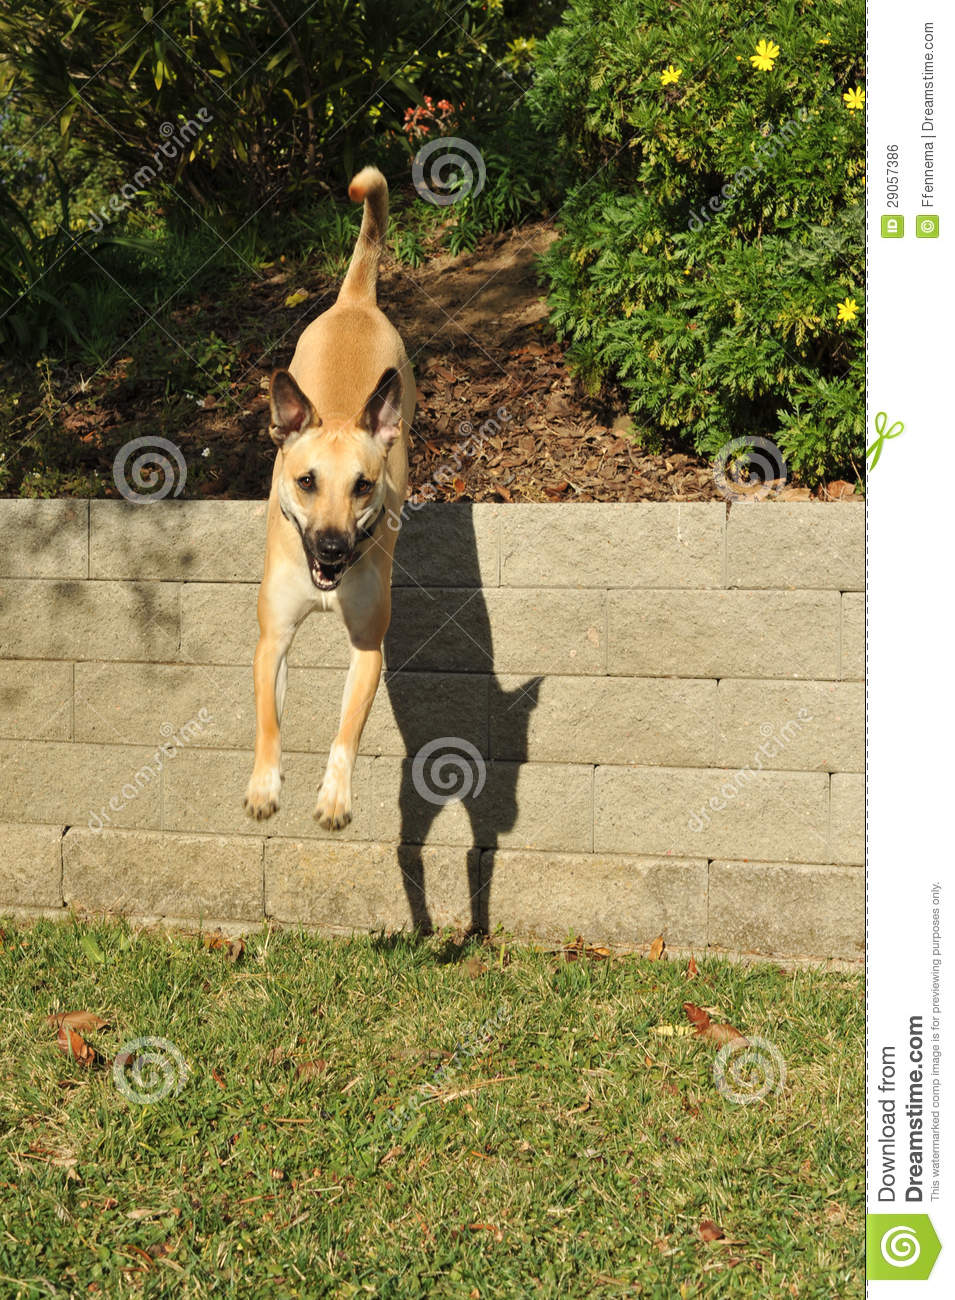 Dog Is Airborne Jumping Off A Retaining Wall Stock Photo